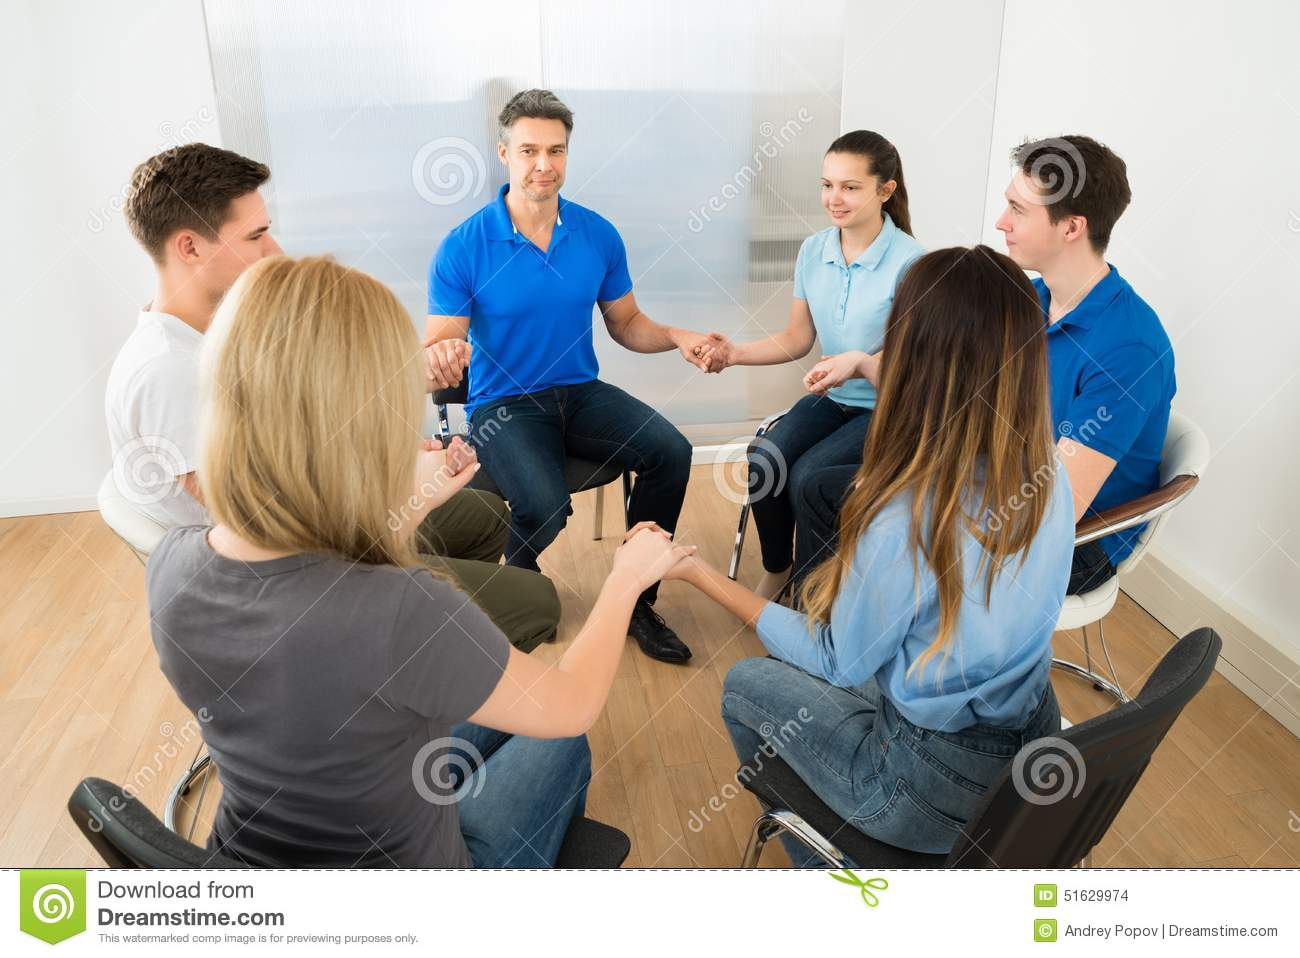 People praying together stock photo. Image of group, male ...